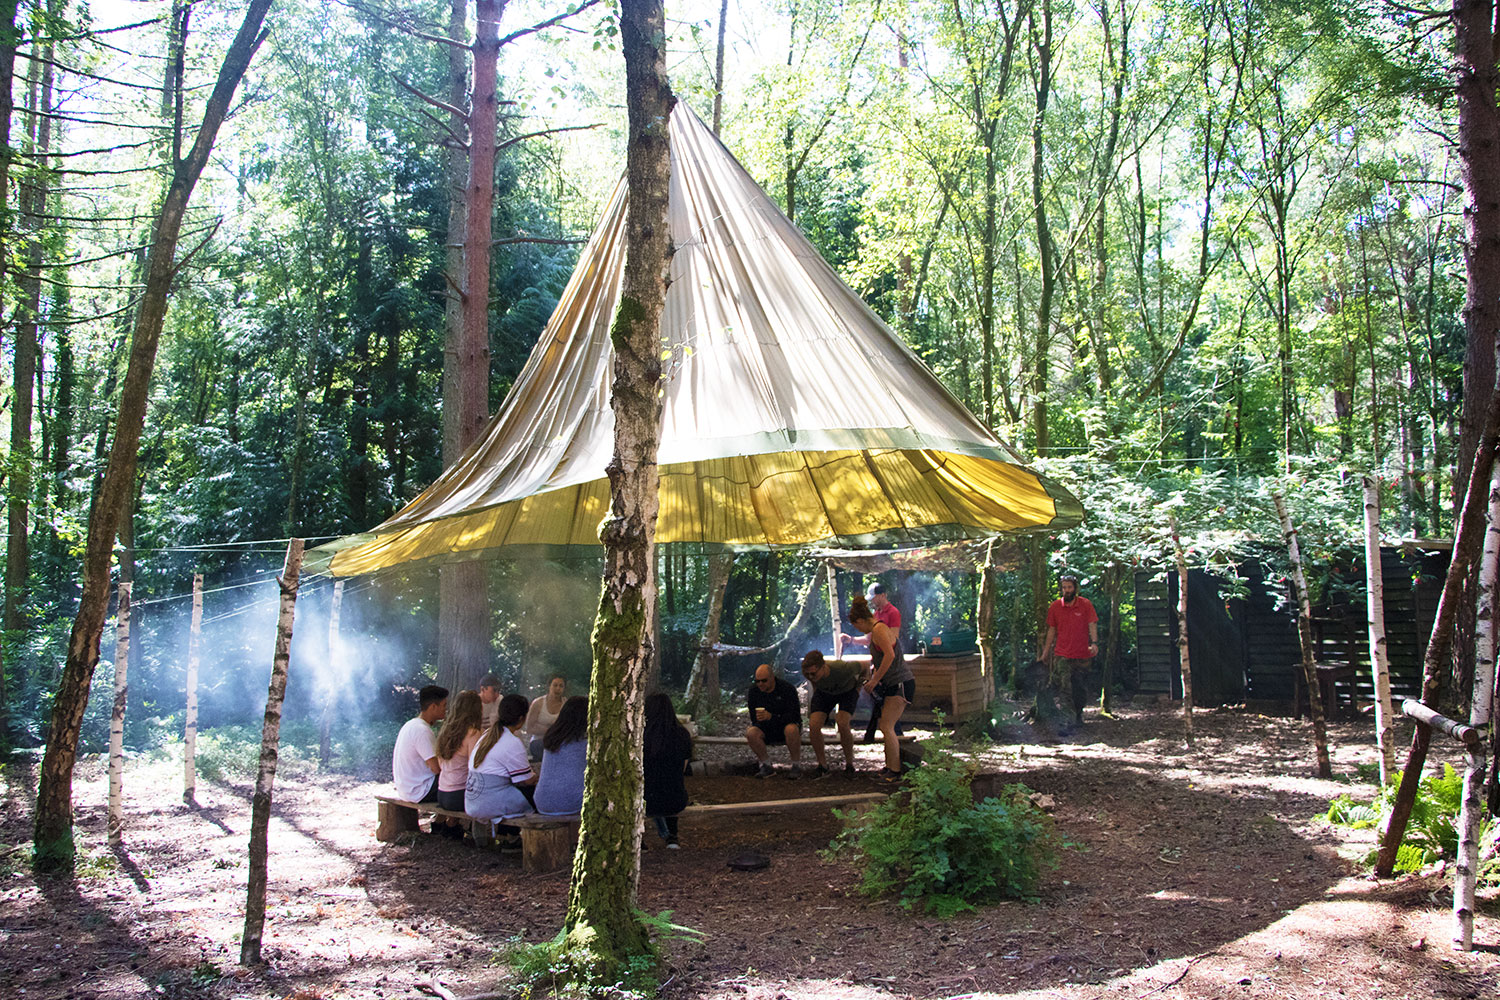 Take part in Bushcraft courses at our woodland base.